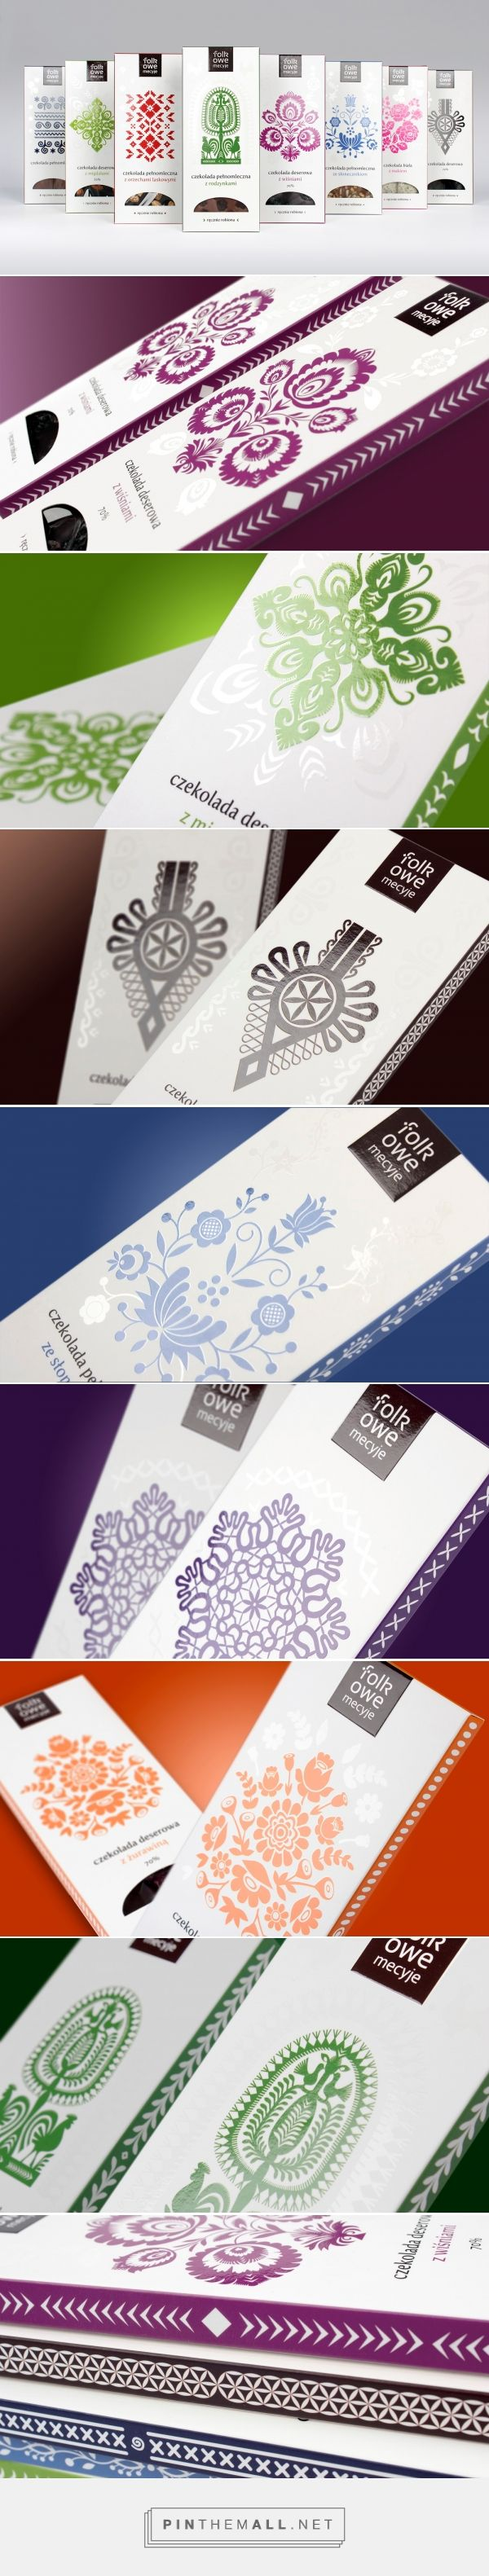 Chocolate Folkowe Mecyje - Packaging of the World - Creative Package Design Gallery - http://www.packagingoftheworld.com/2016/10/chocolate-folkowe-mecyje.html